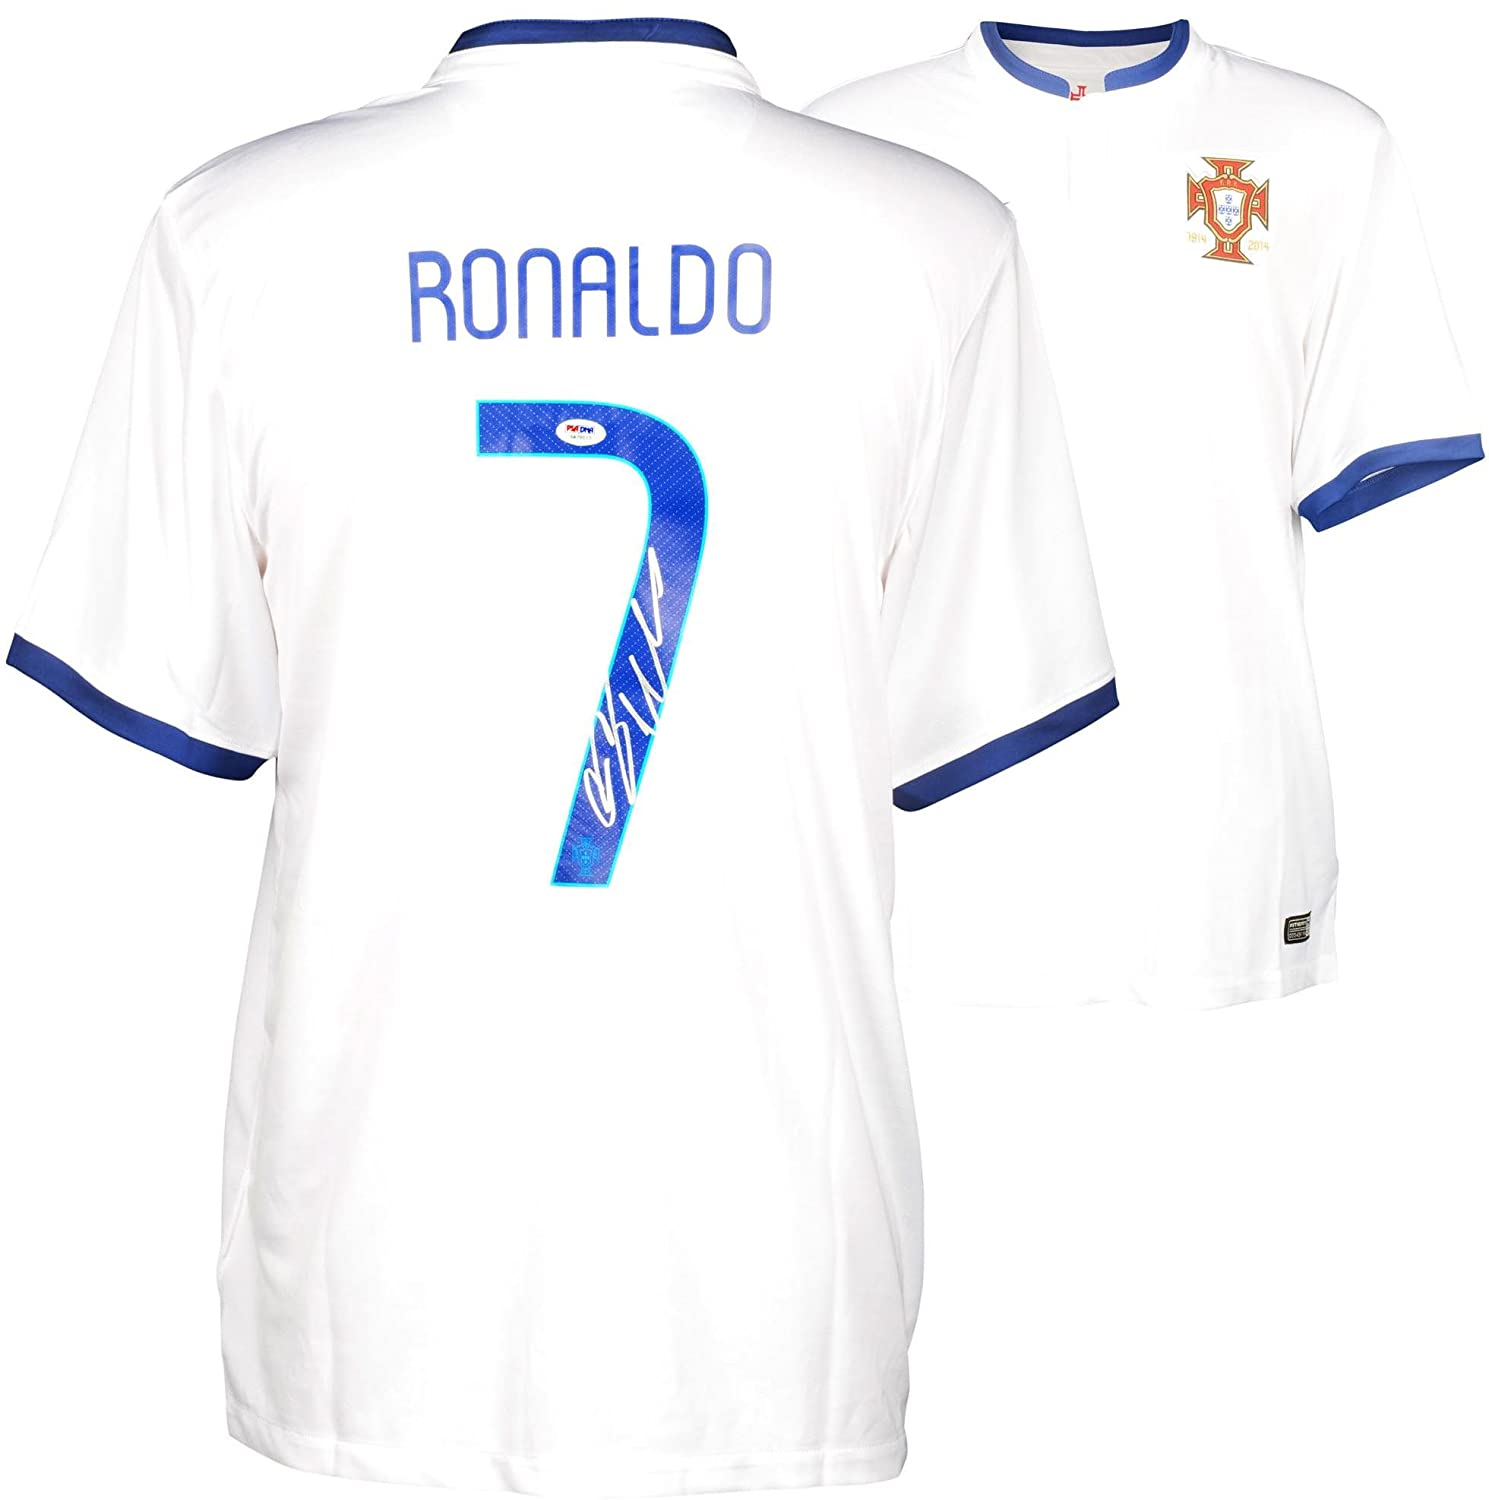 5a0bfff3266b 60%OFF Crisitano Ronaldo Portugal Autographed White Jersey - Fanatics  Authentic Certified - Autographed Soccer